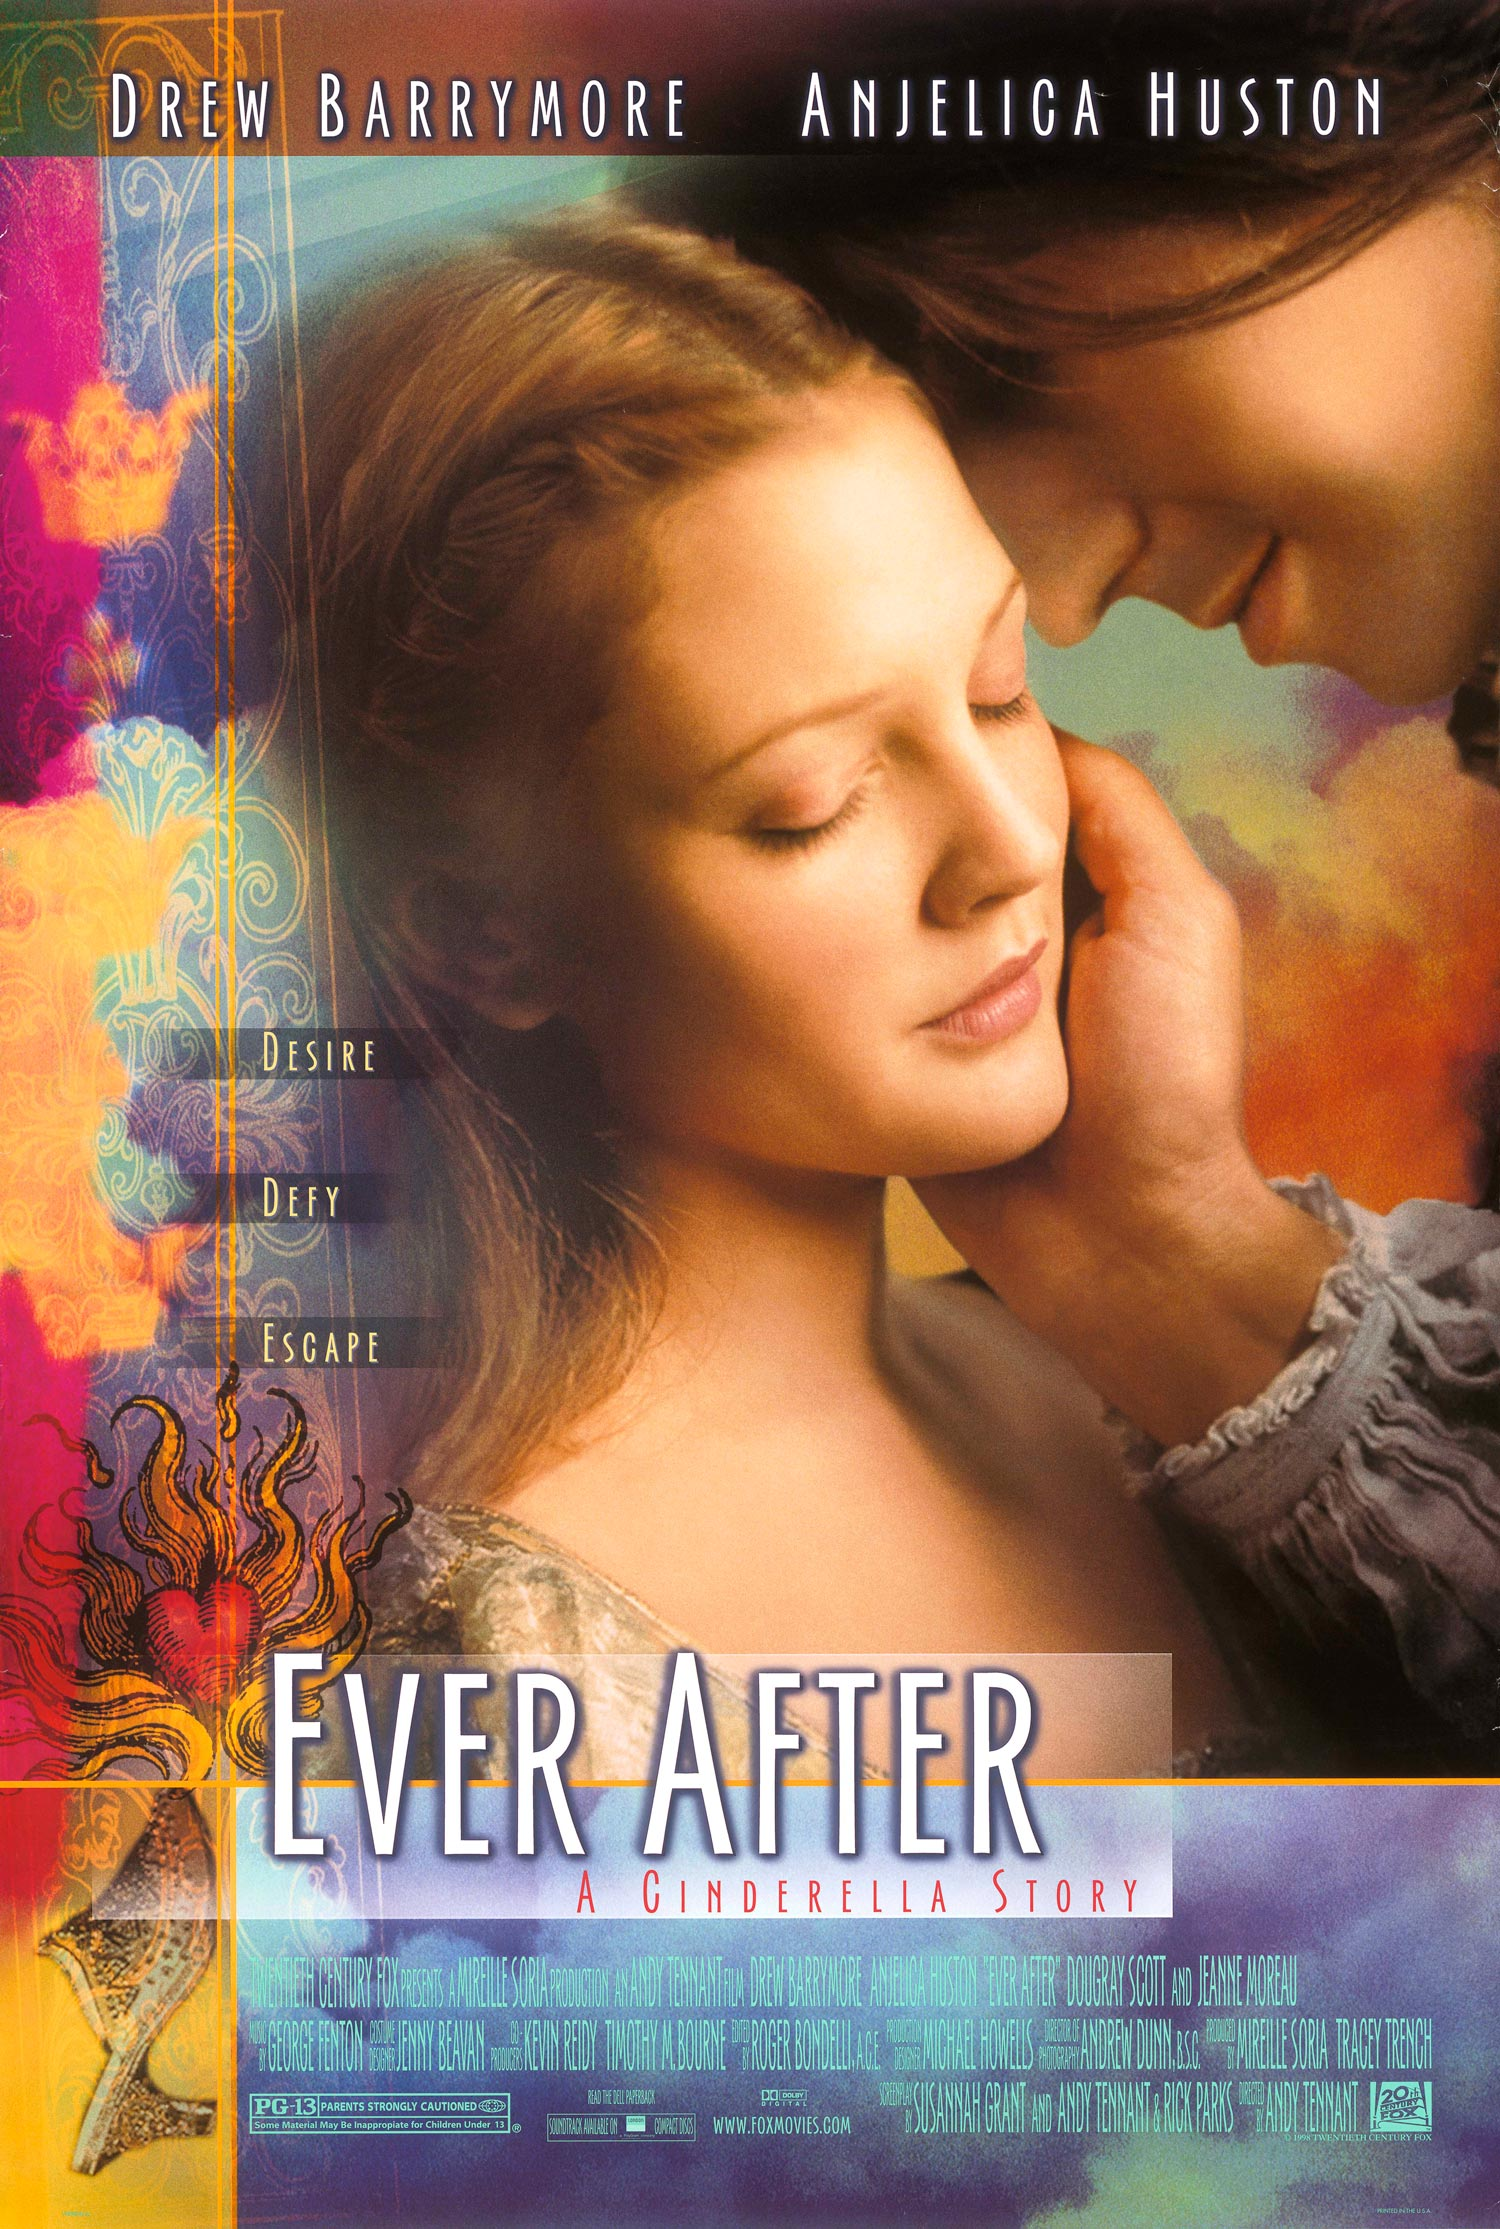 Movie Poster - Ever After: A Cinderella Story